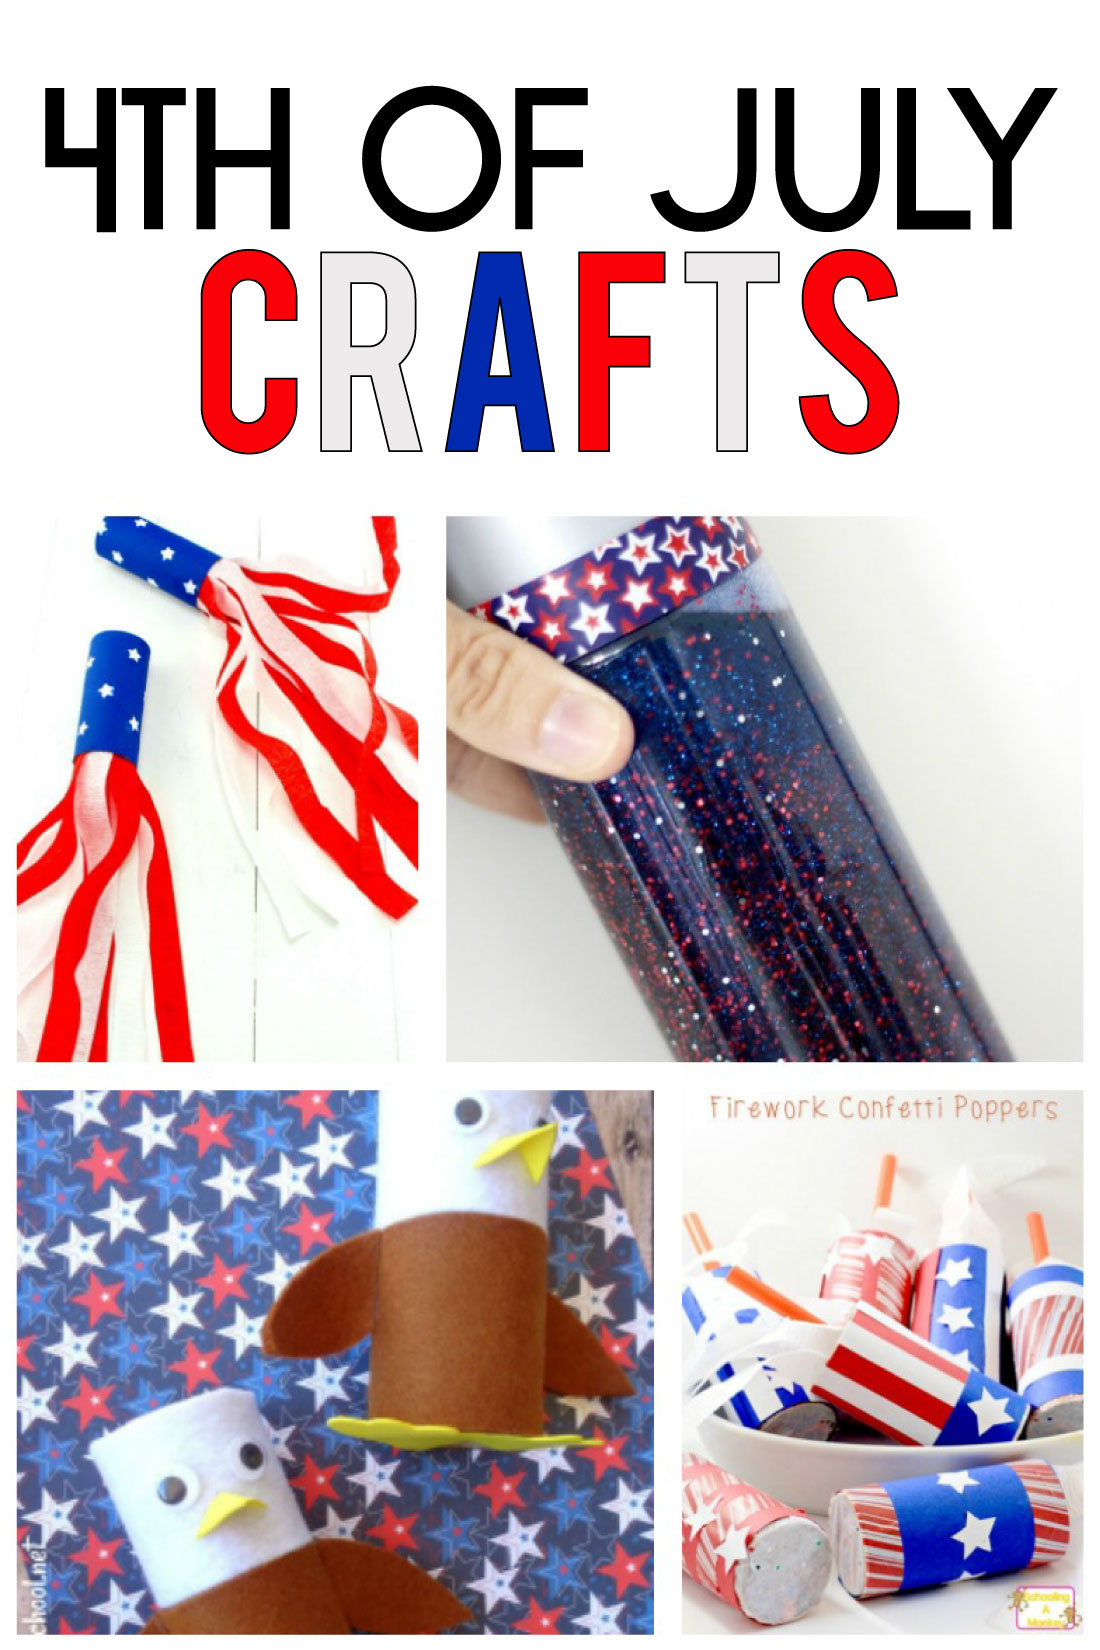 4th of July Crafts - all kinds of crafts to make with your kids for this holiday. www.thirtyhandmadedays.com